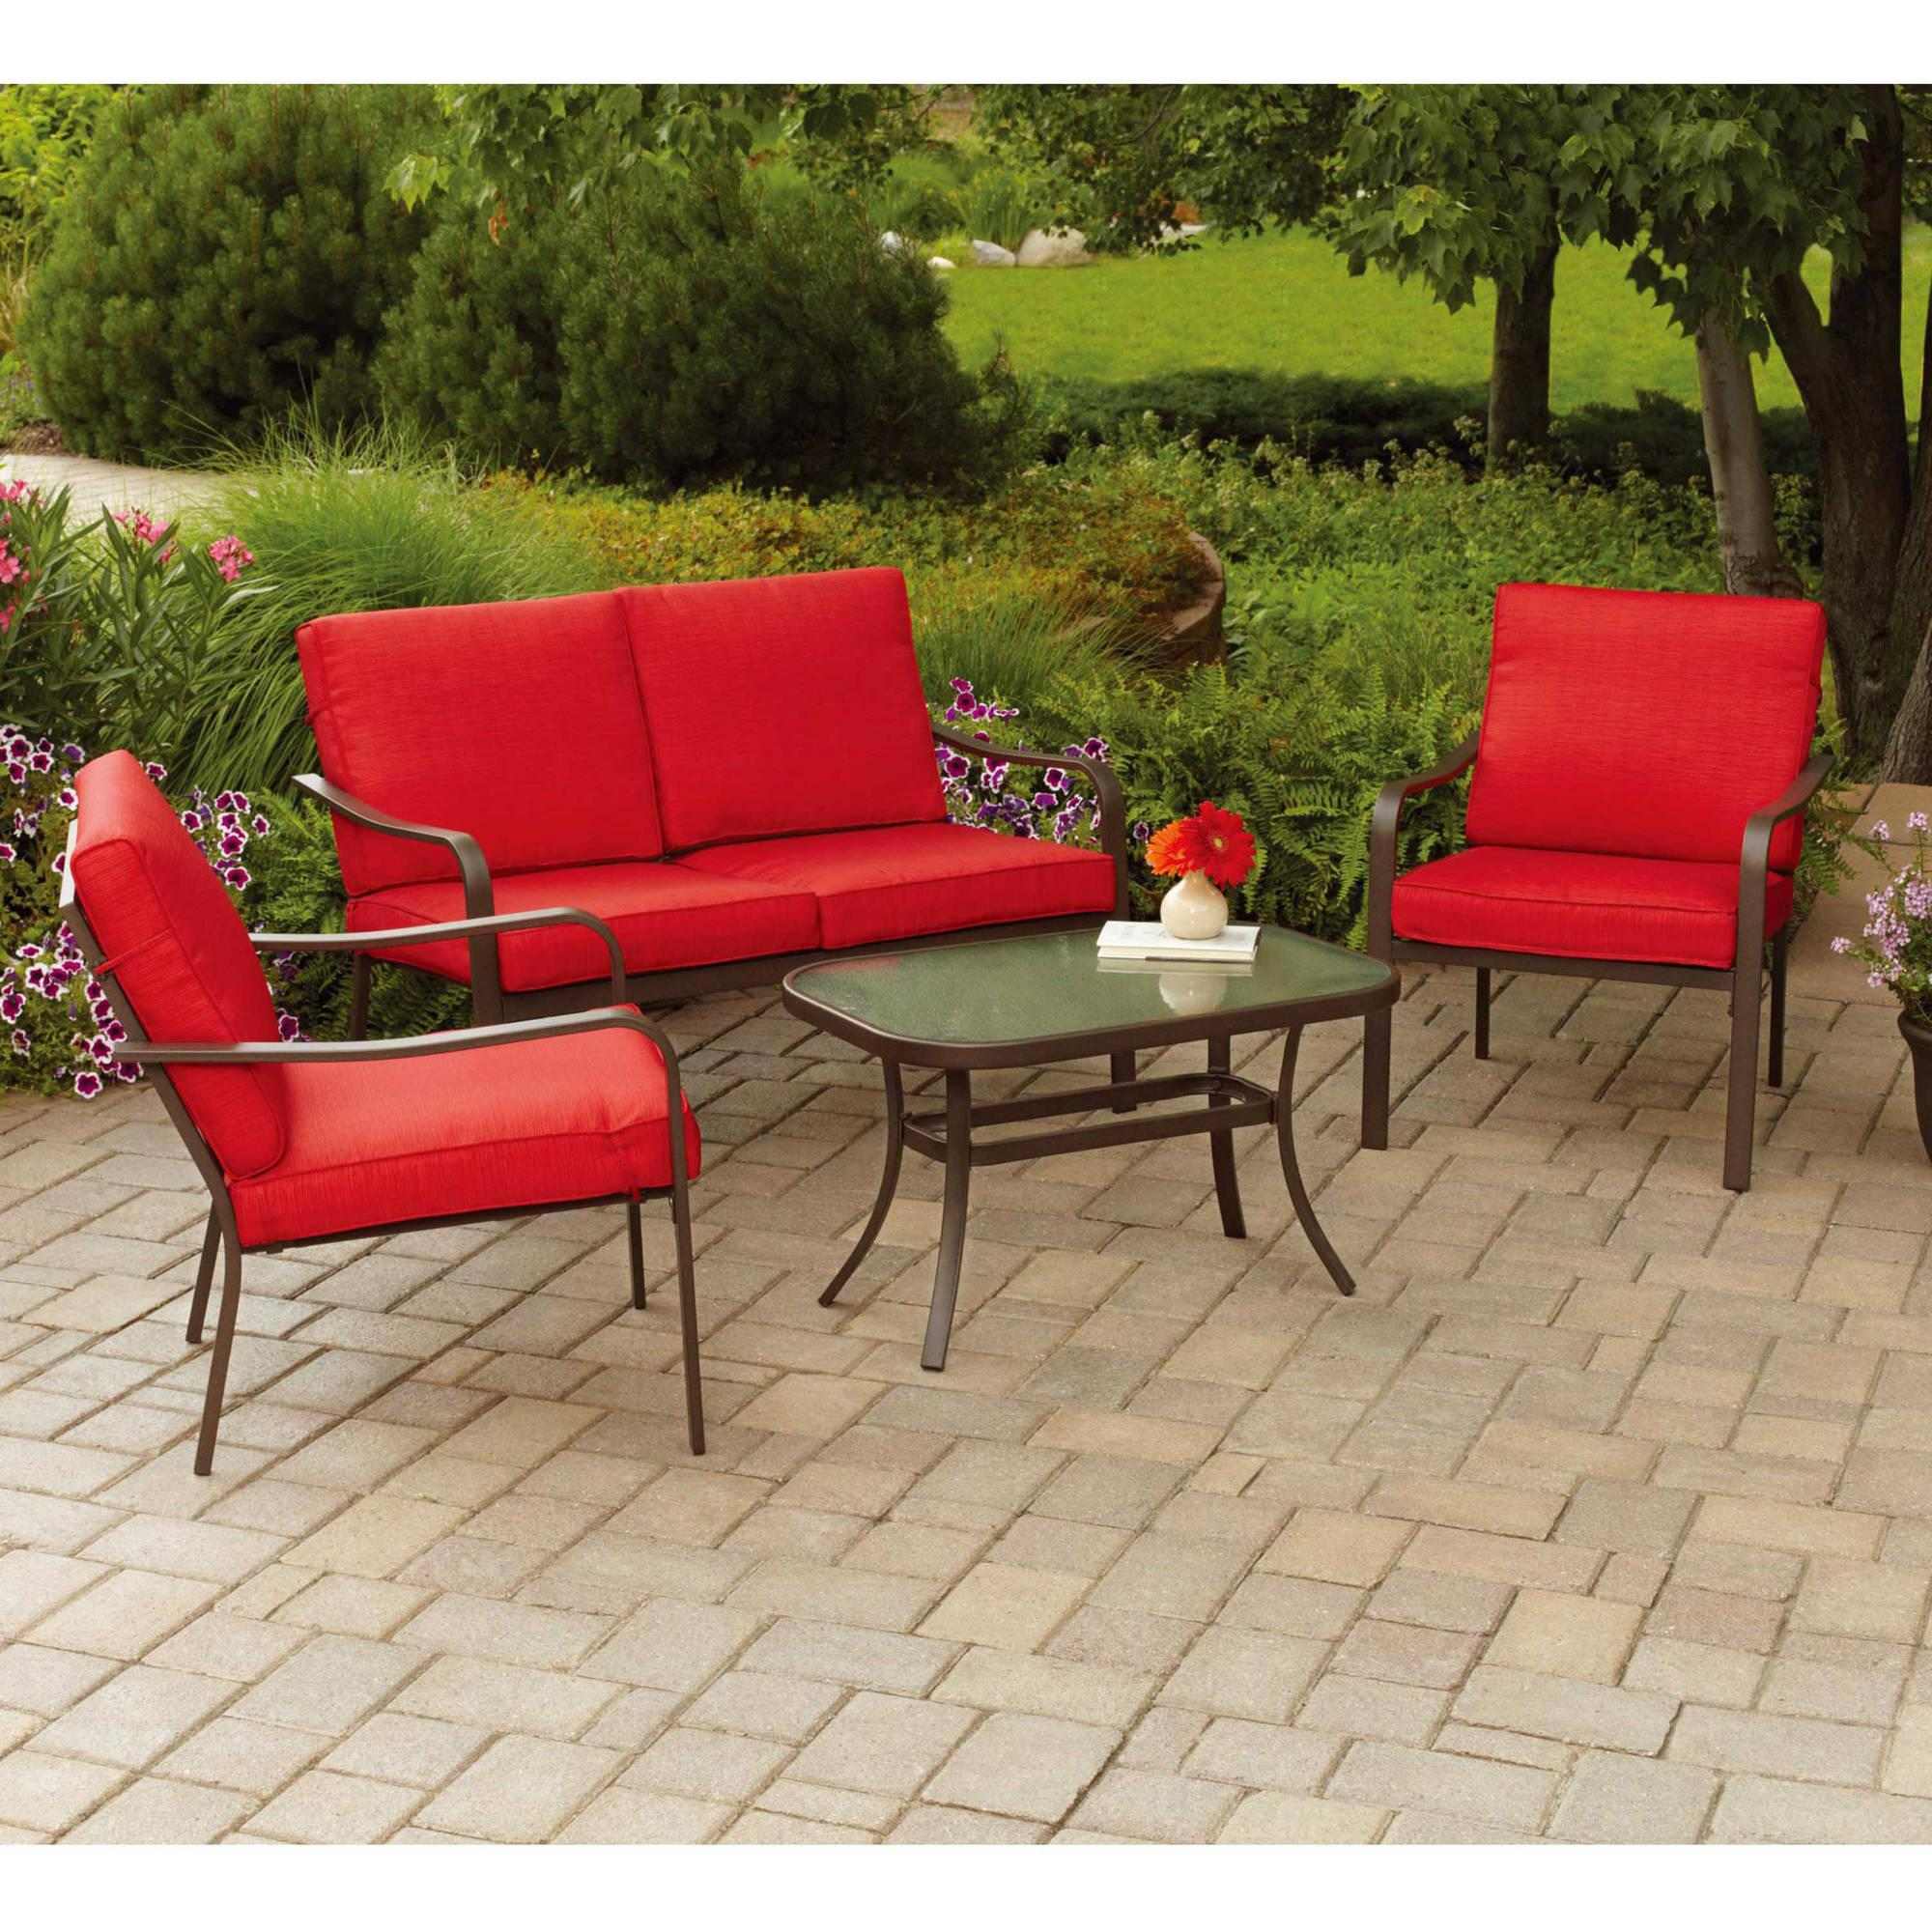 mainstays stanton cushioned piece patio conversation set seats  - sus